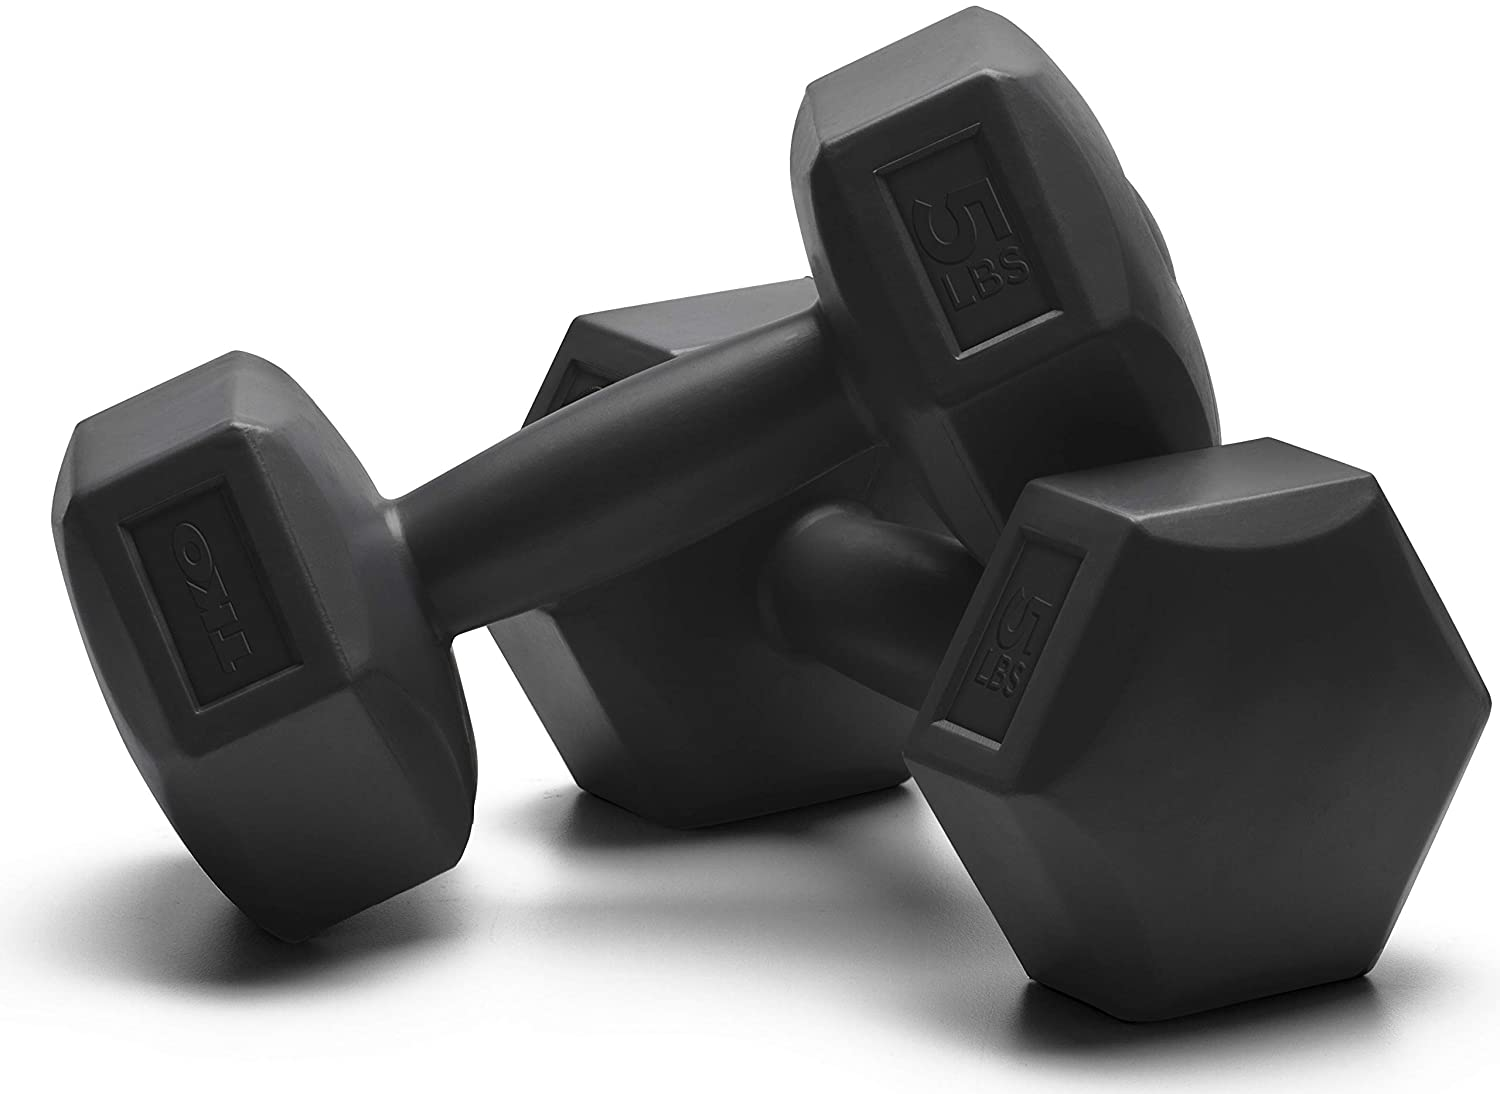 amazon com tko extreme dumbbells with special coating (10 lbsamazon com tko extreme dumbbells with special coating (10 lbs hexagon set (5 lbs each) black) sports \u0026 outdoors